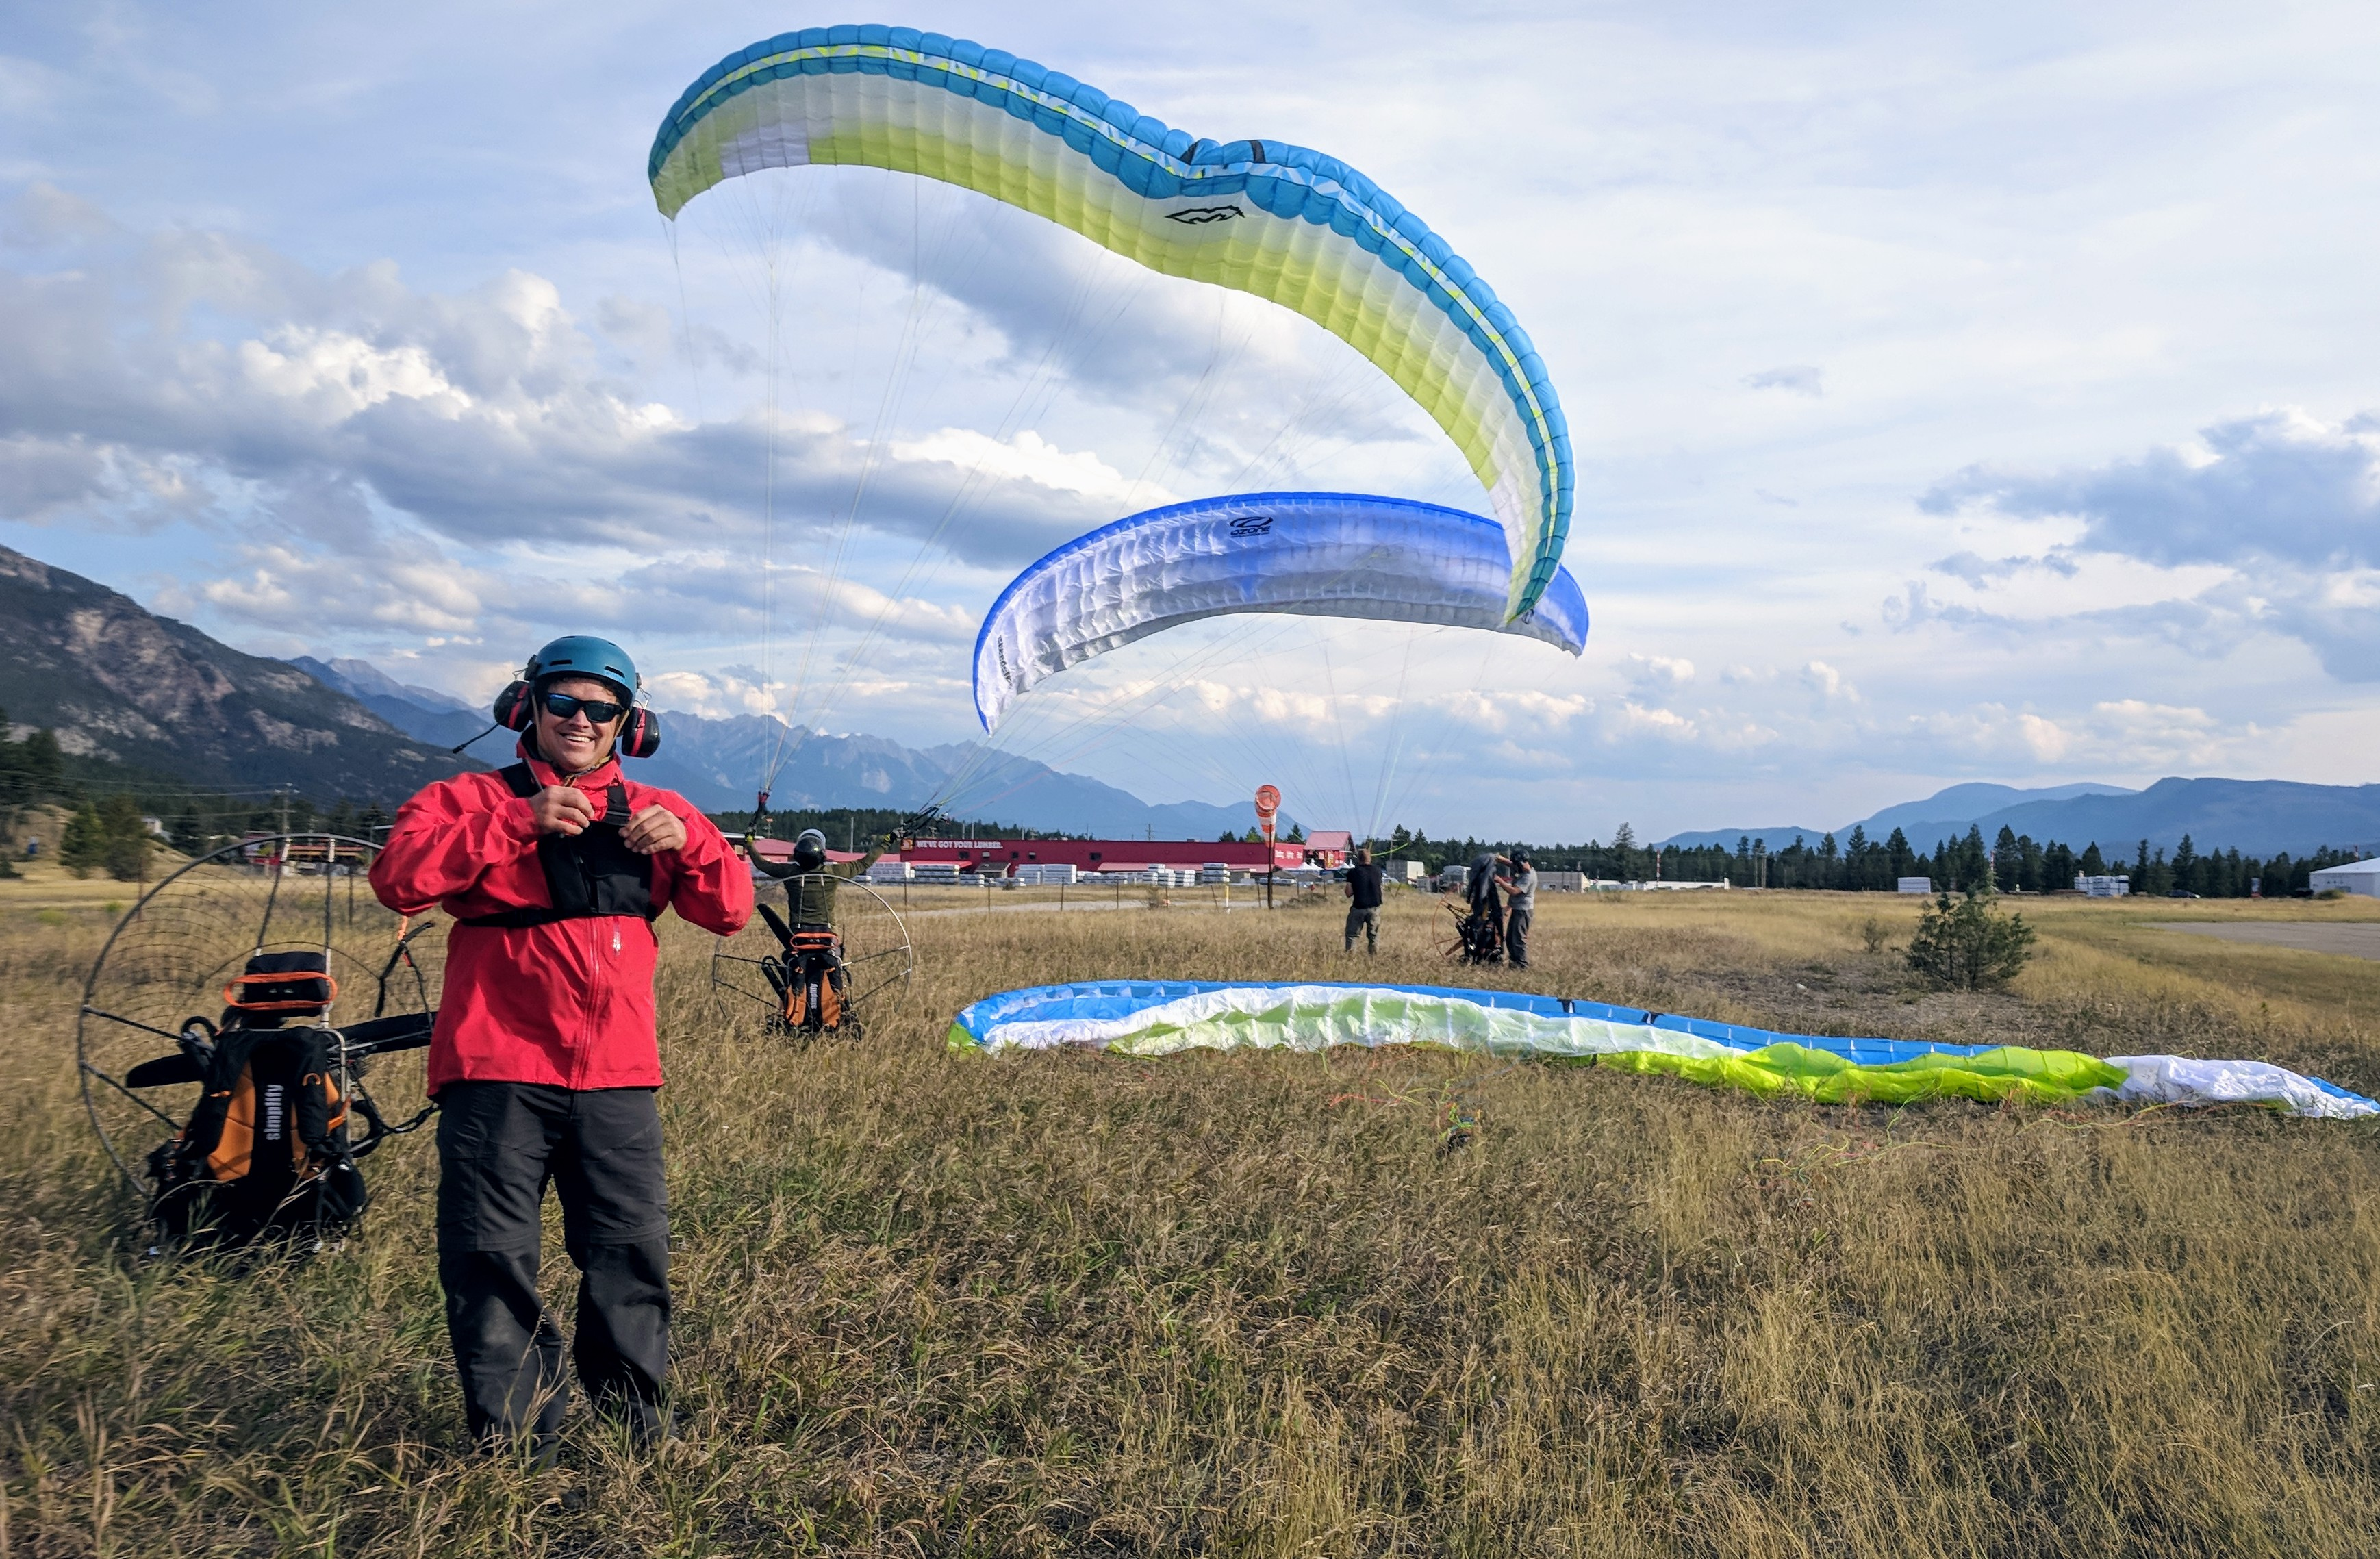 www FlyingMax com: Powered Paragliding (PPG)